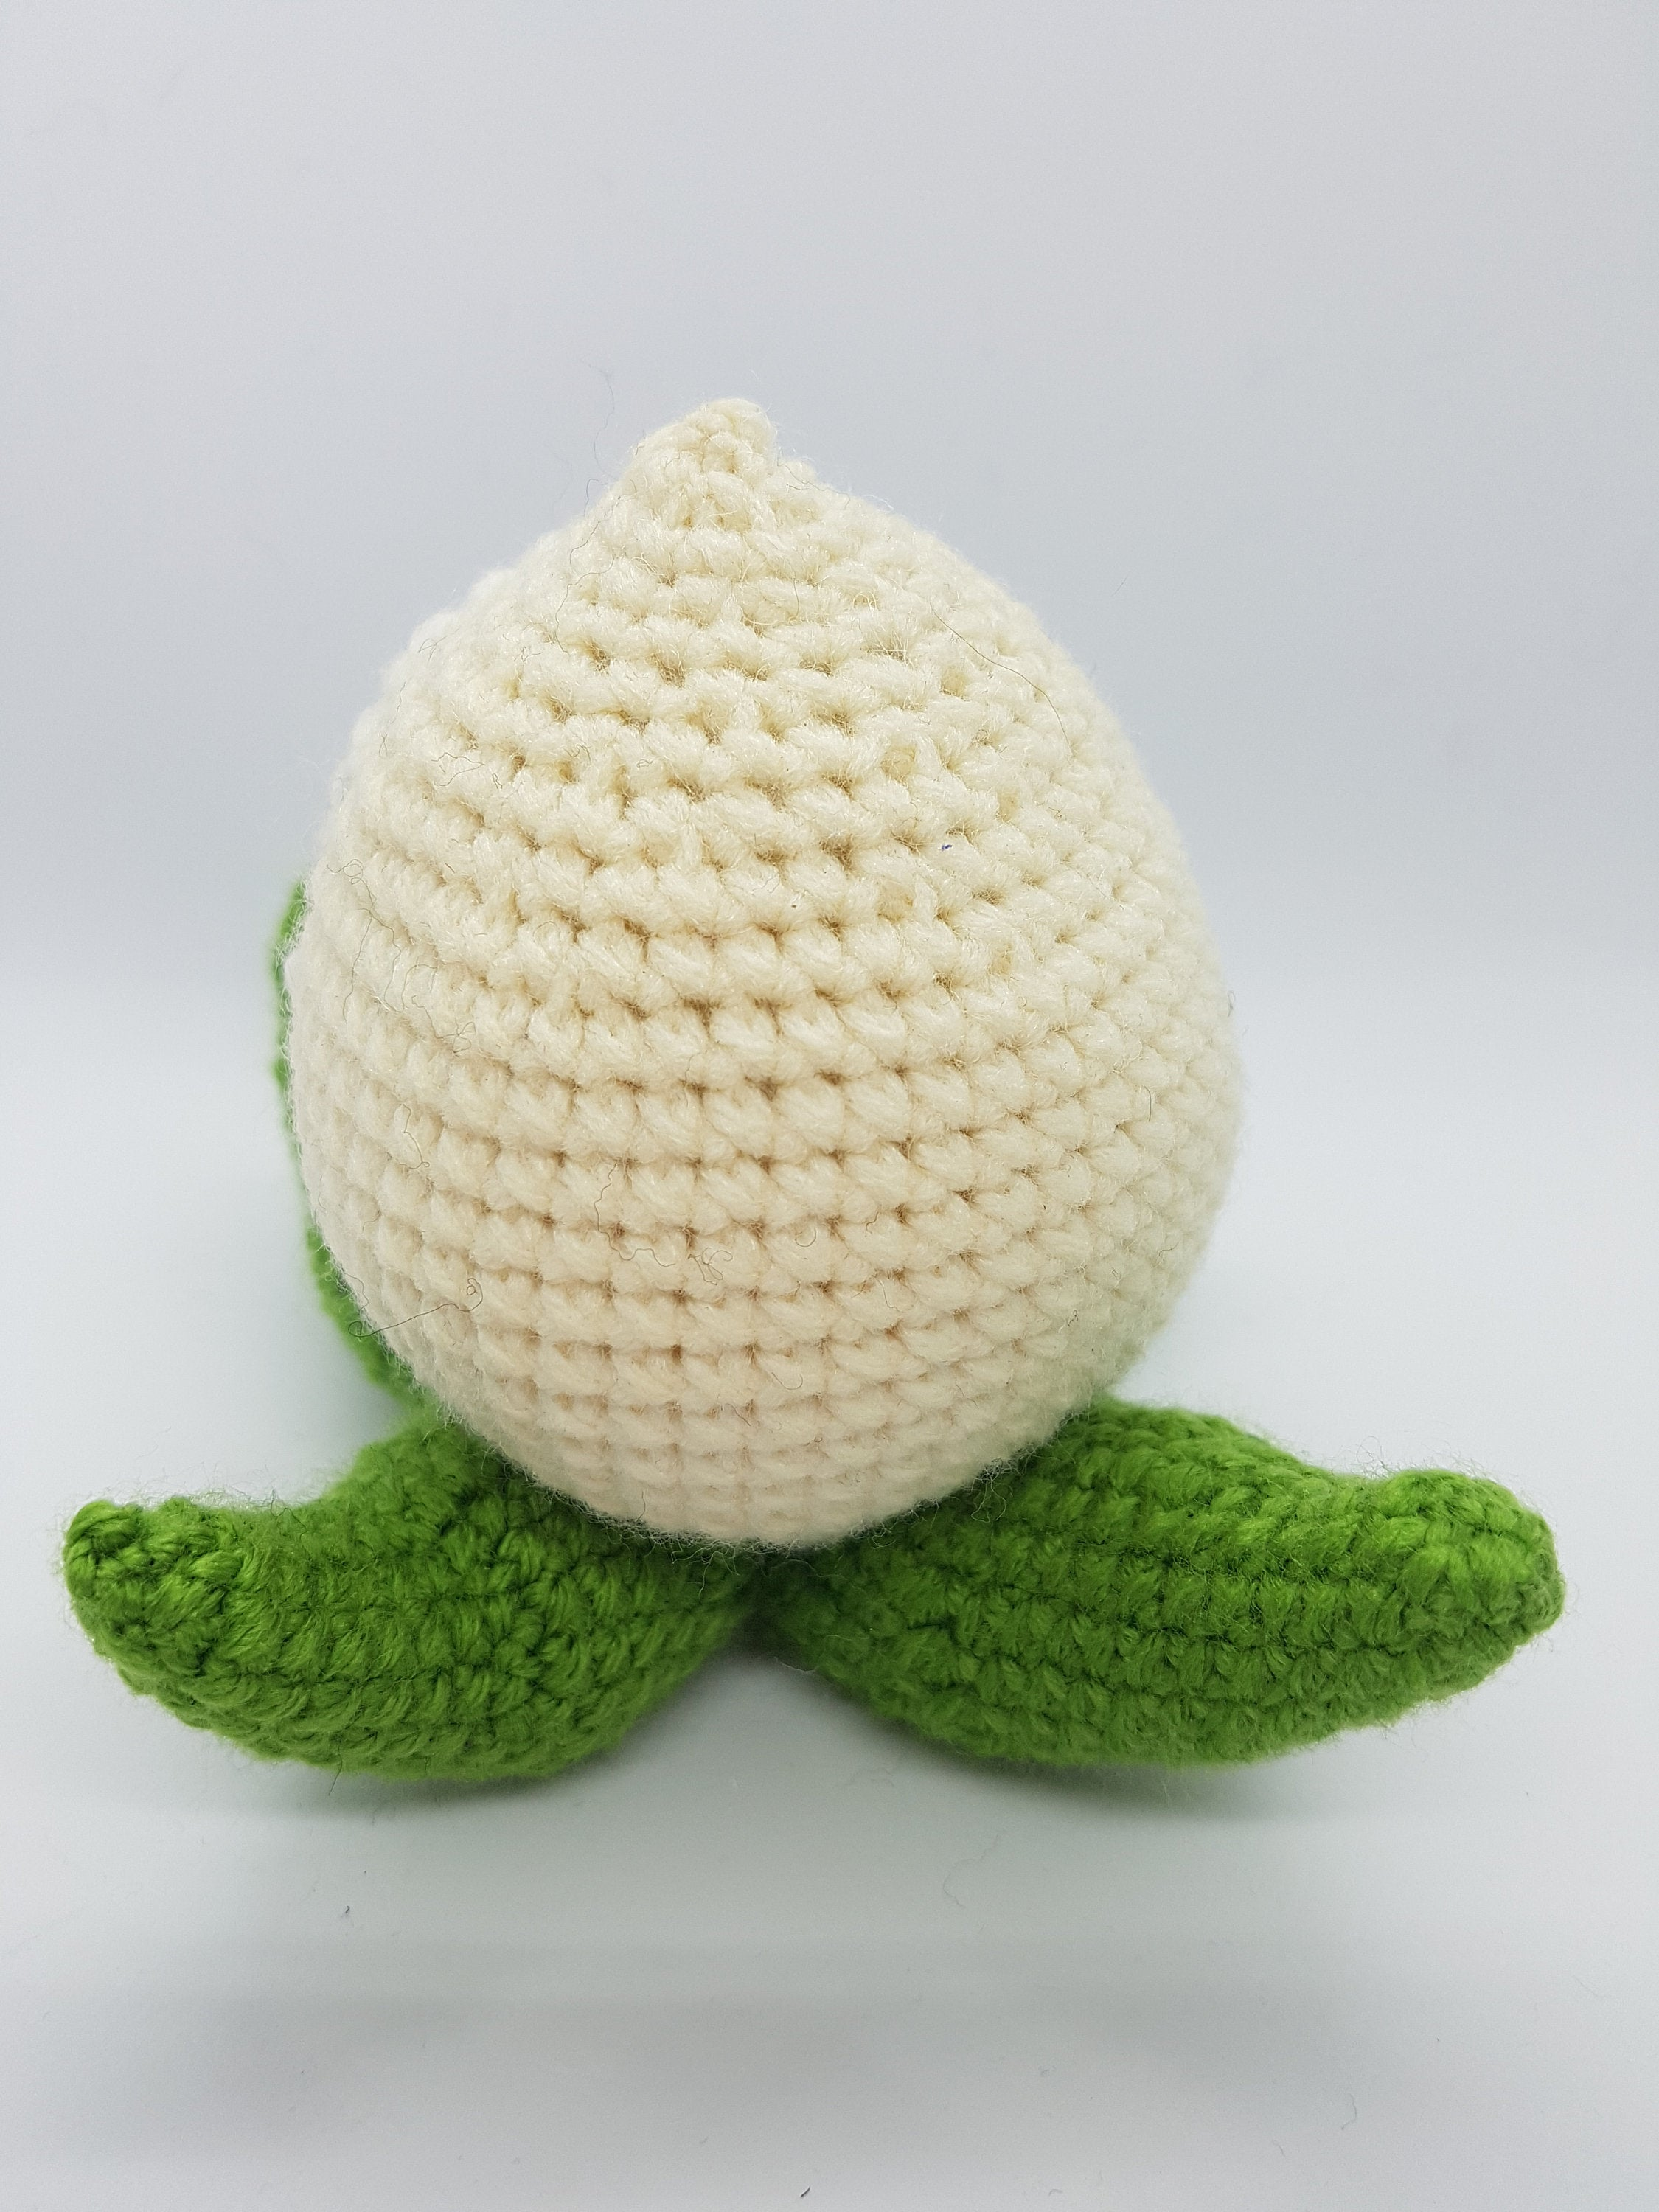 pachimari from overwatch amigurumi